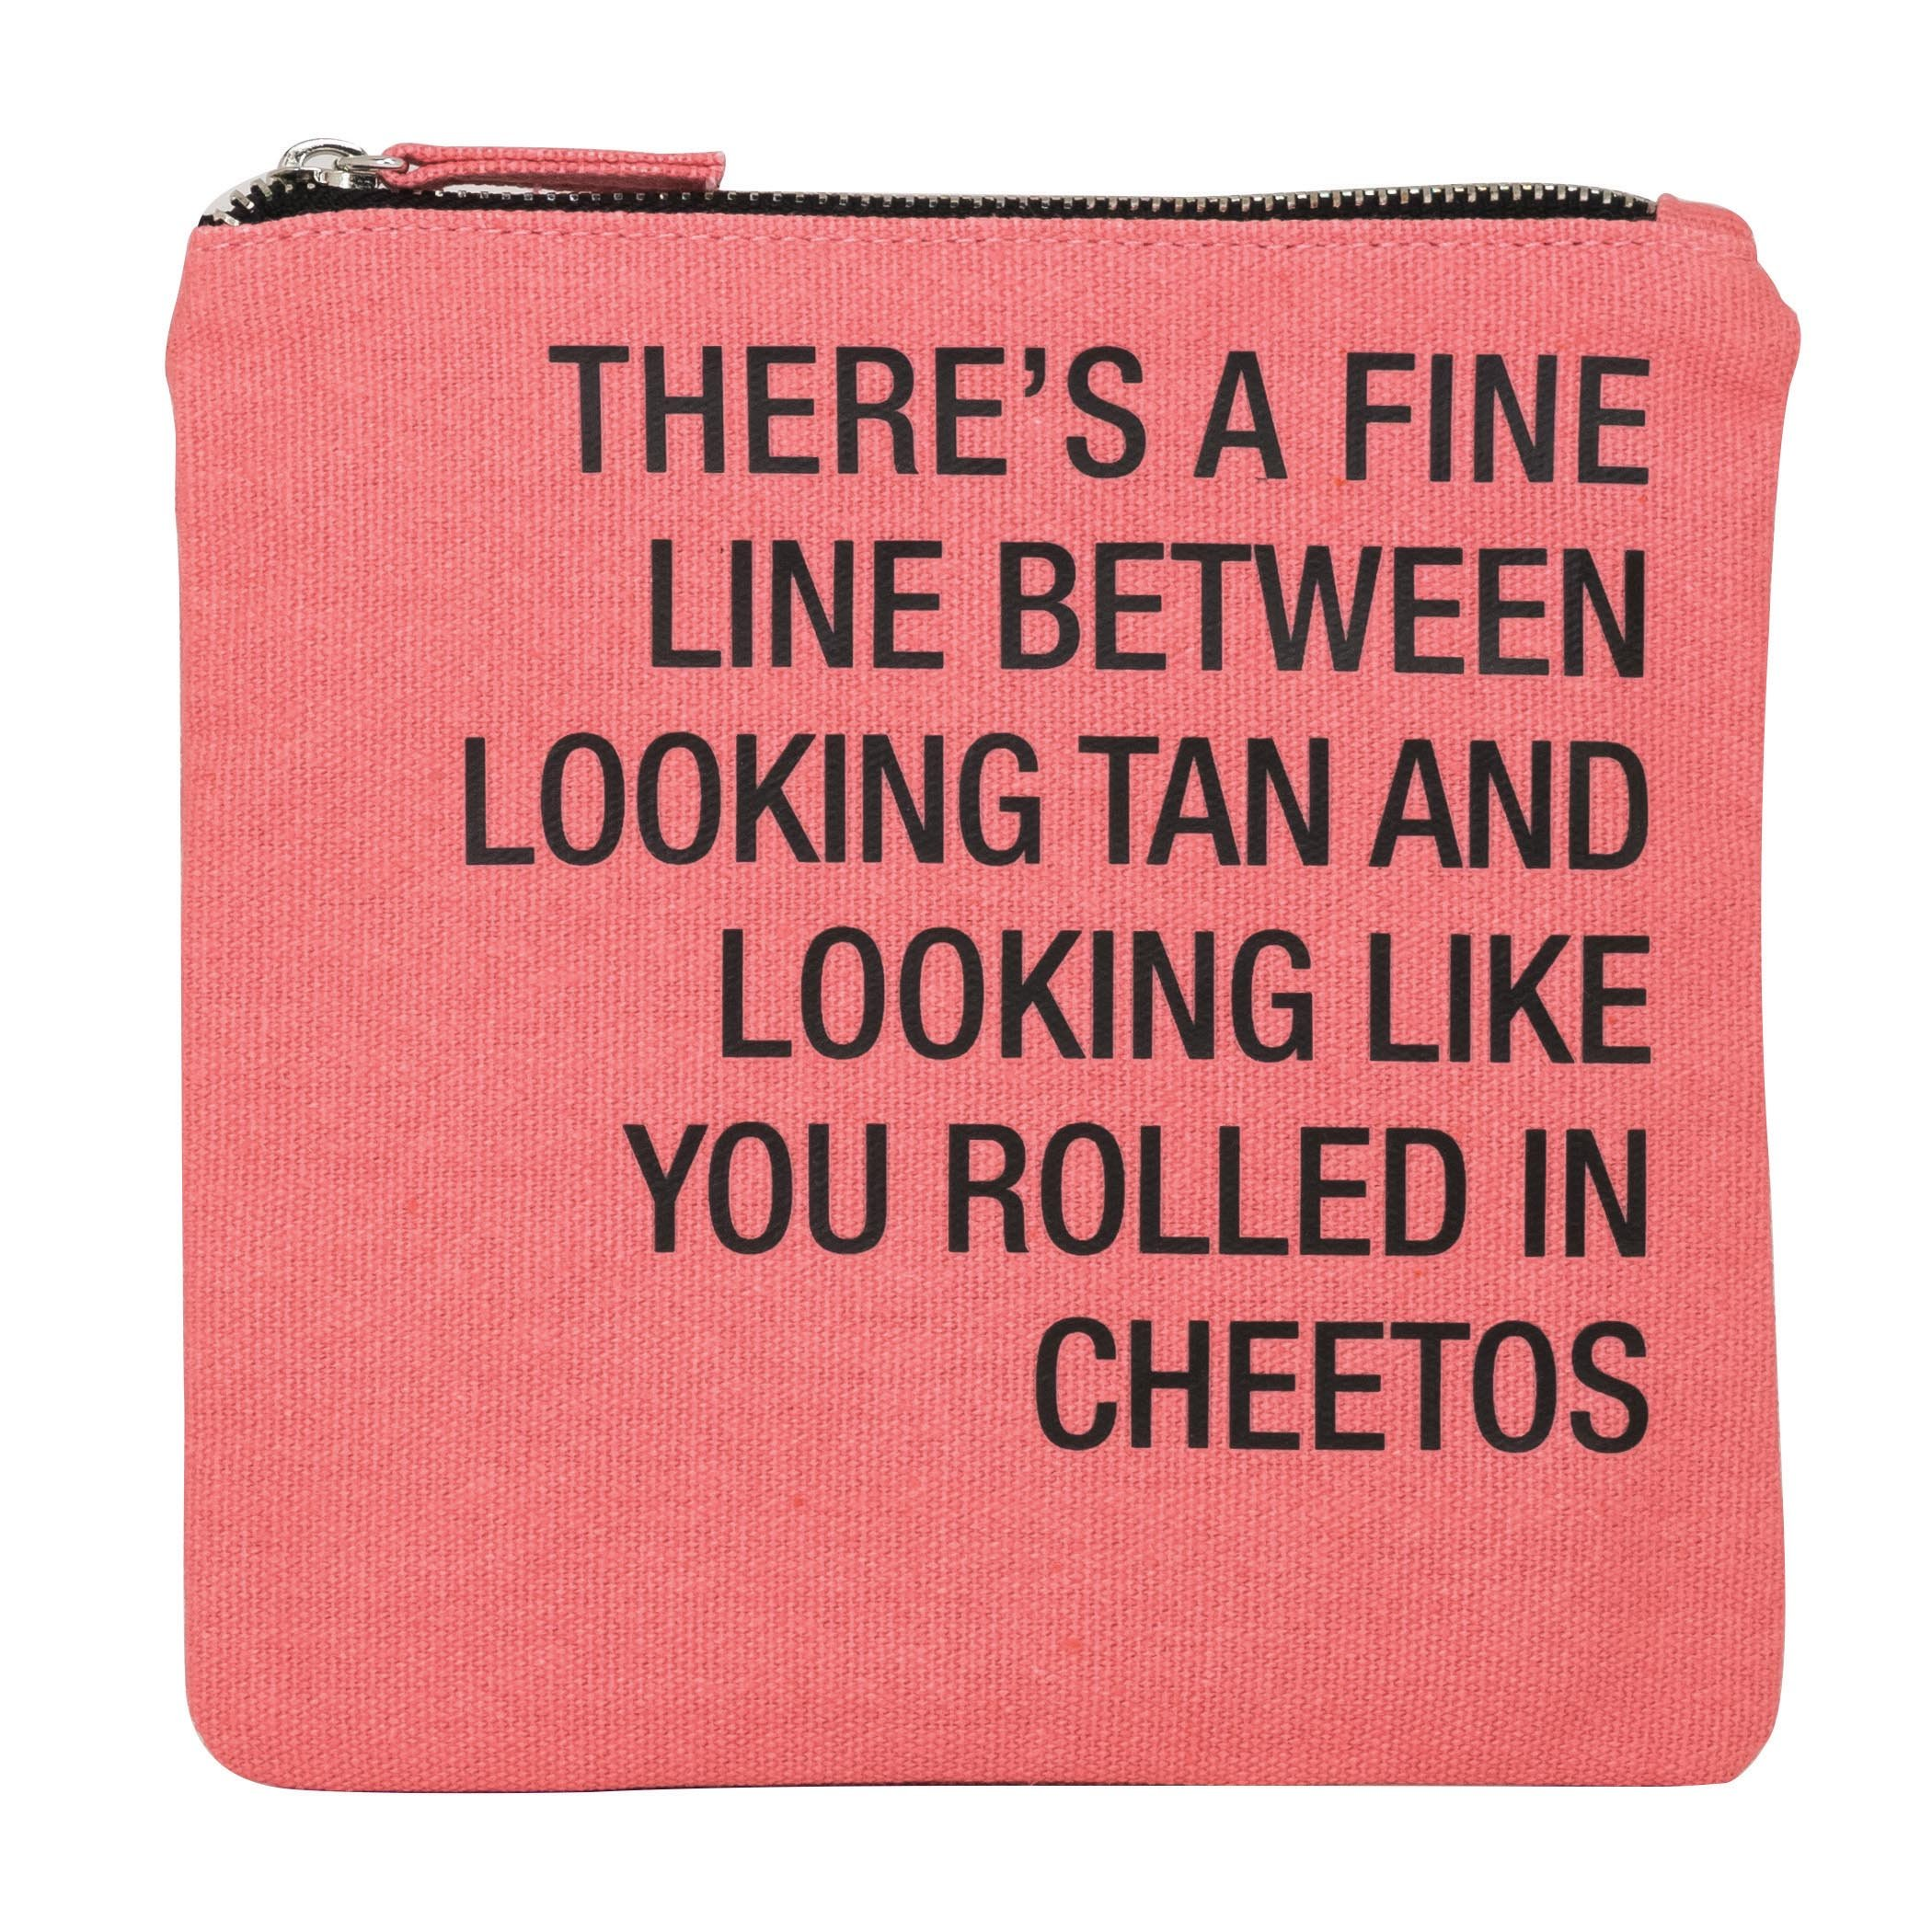 About Face Designs Rolled in Cheetos Cosmetic Bag, 6.75'' x 6.75'', Peach